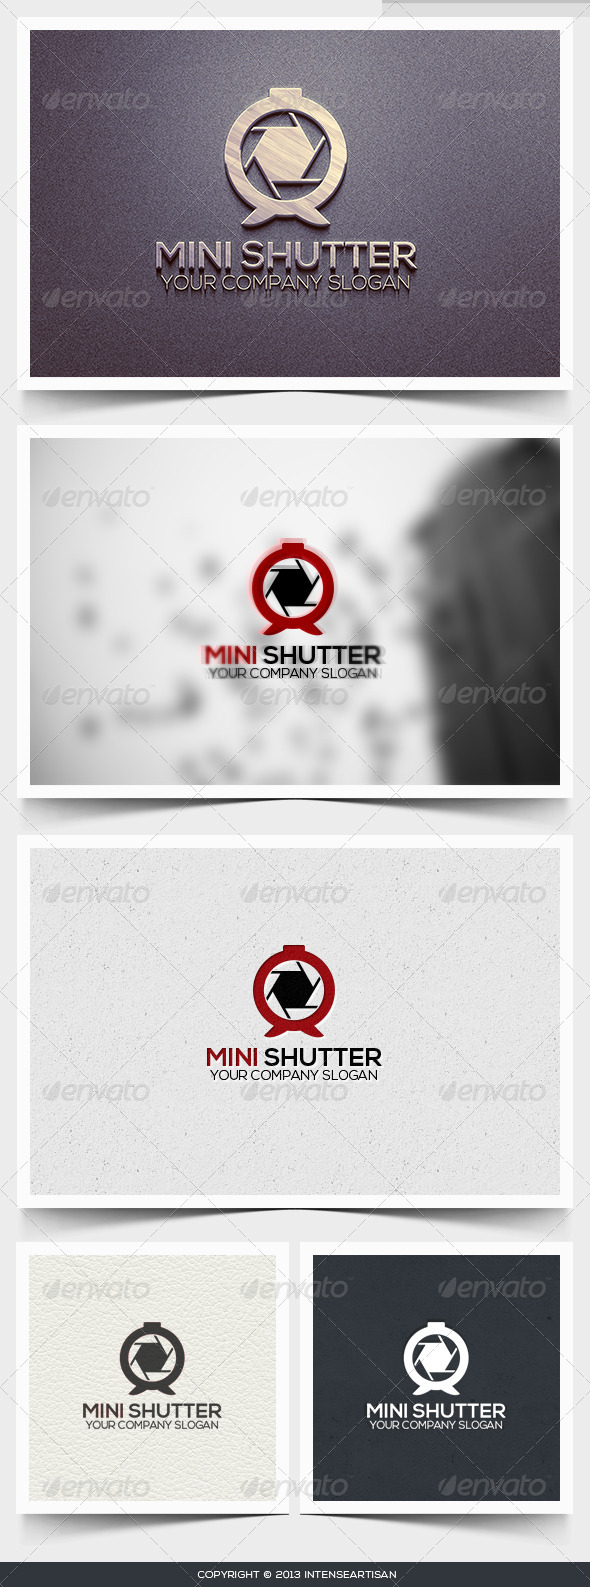 Mini Shutter Logo Template - Objects Logo Templates